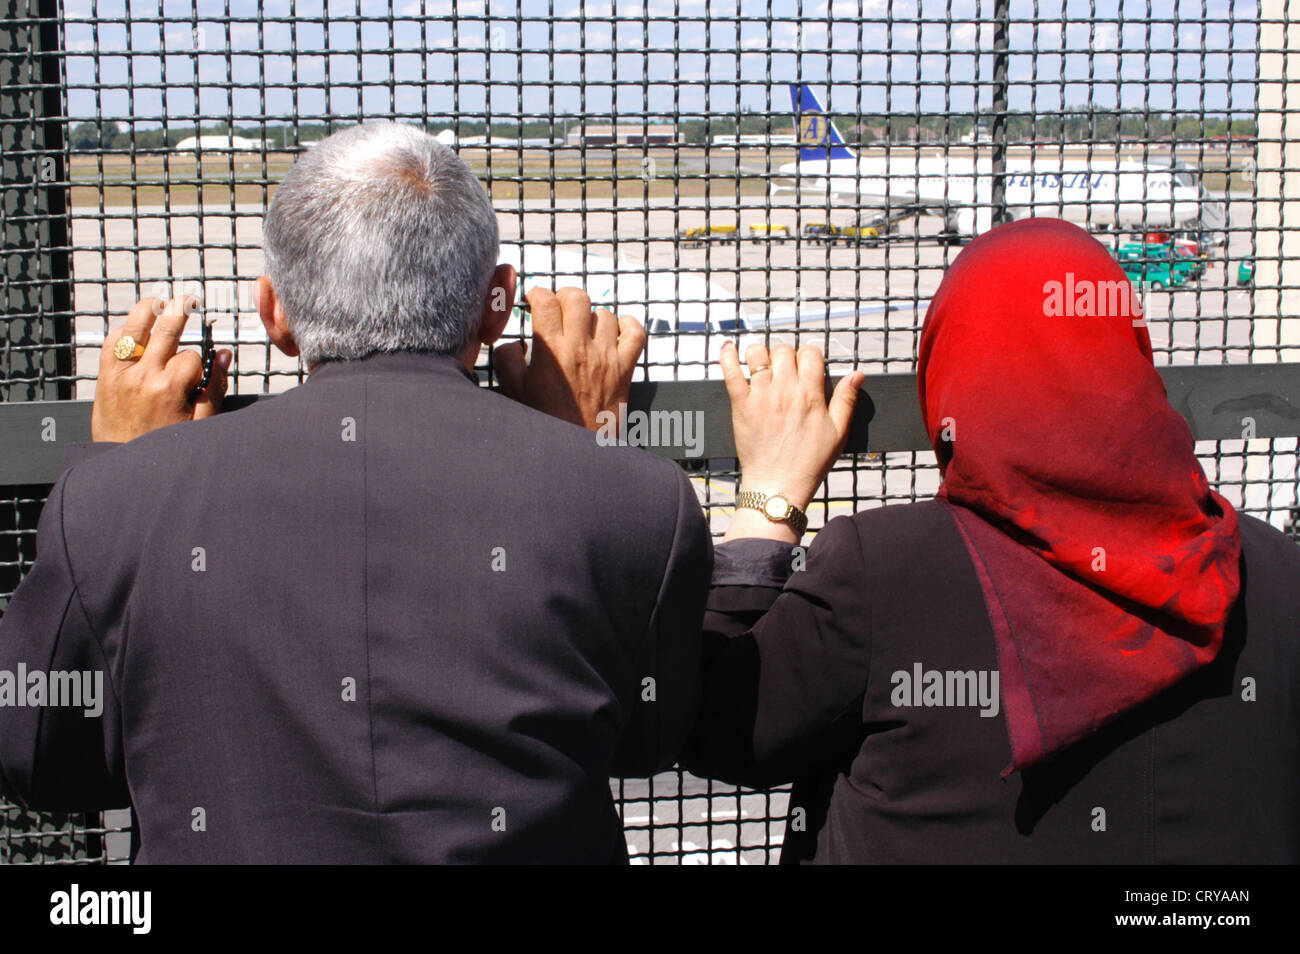 Foreigners at Berlin Tegel Airport - Stock Image